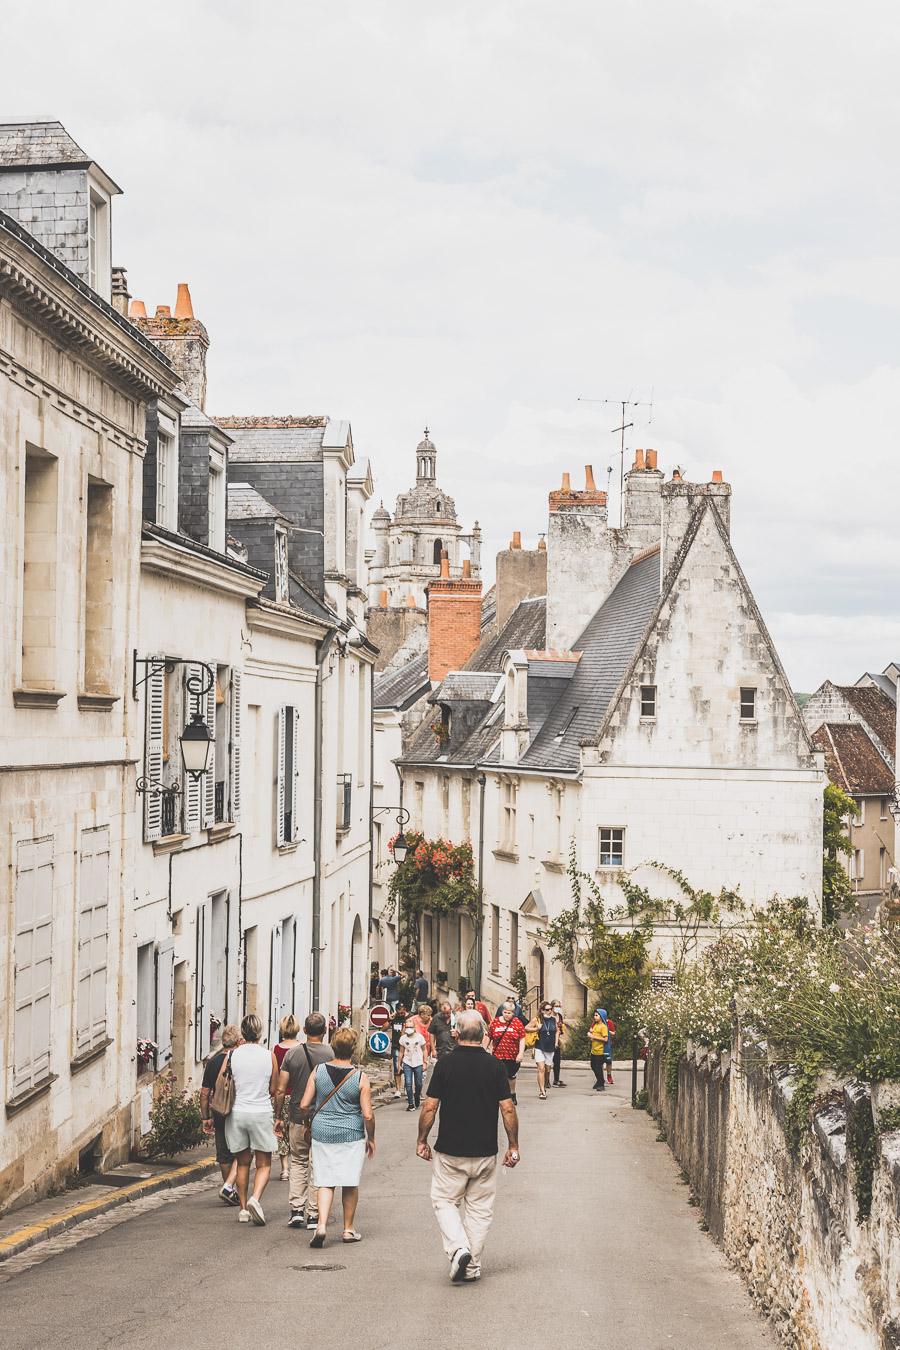 Loches, Indre-et-Loire